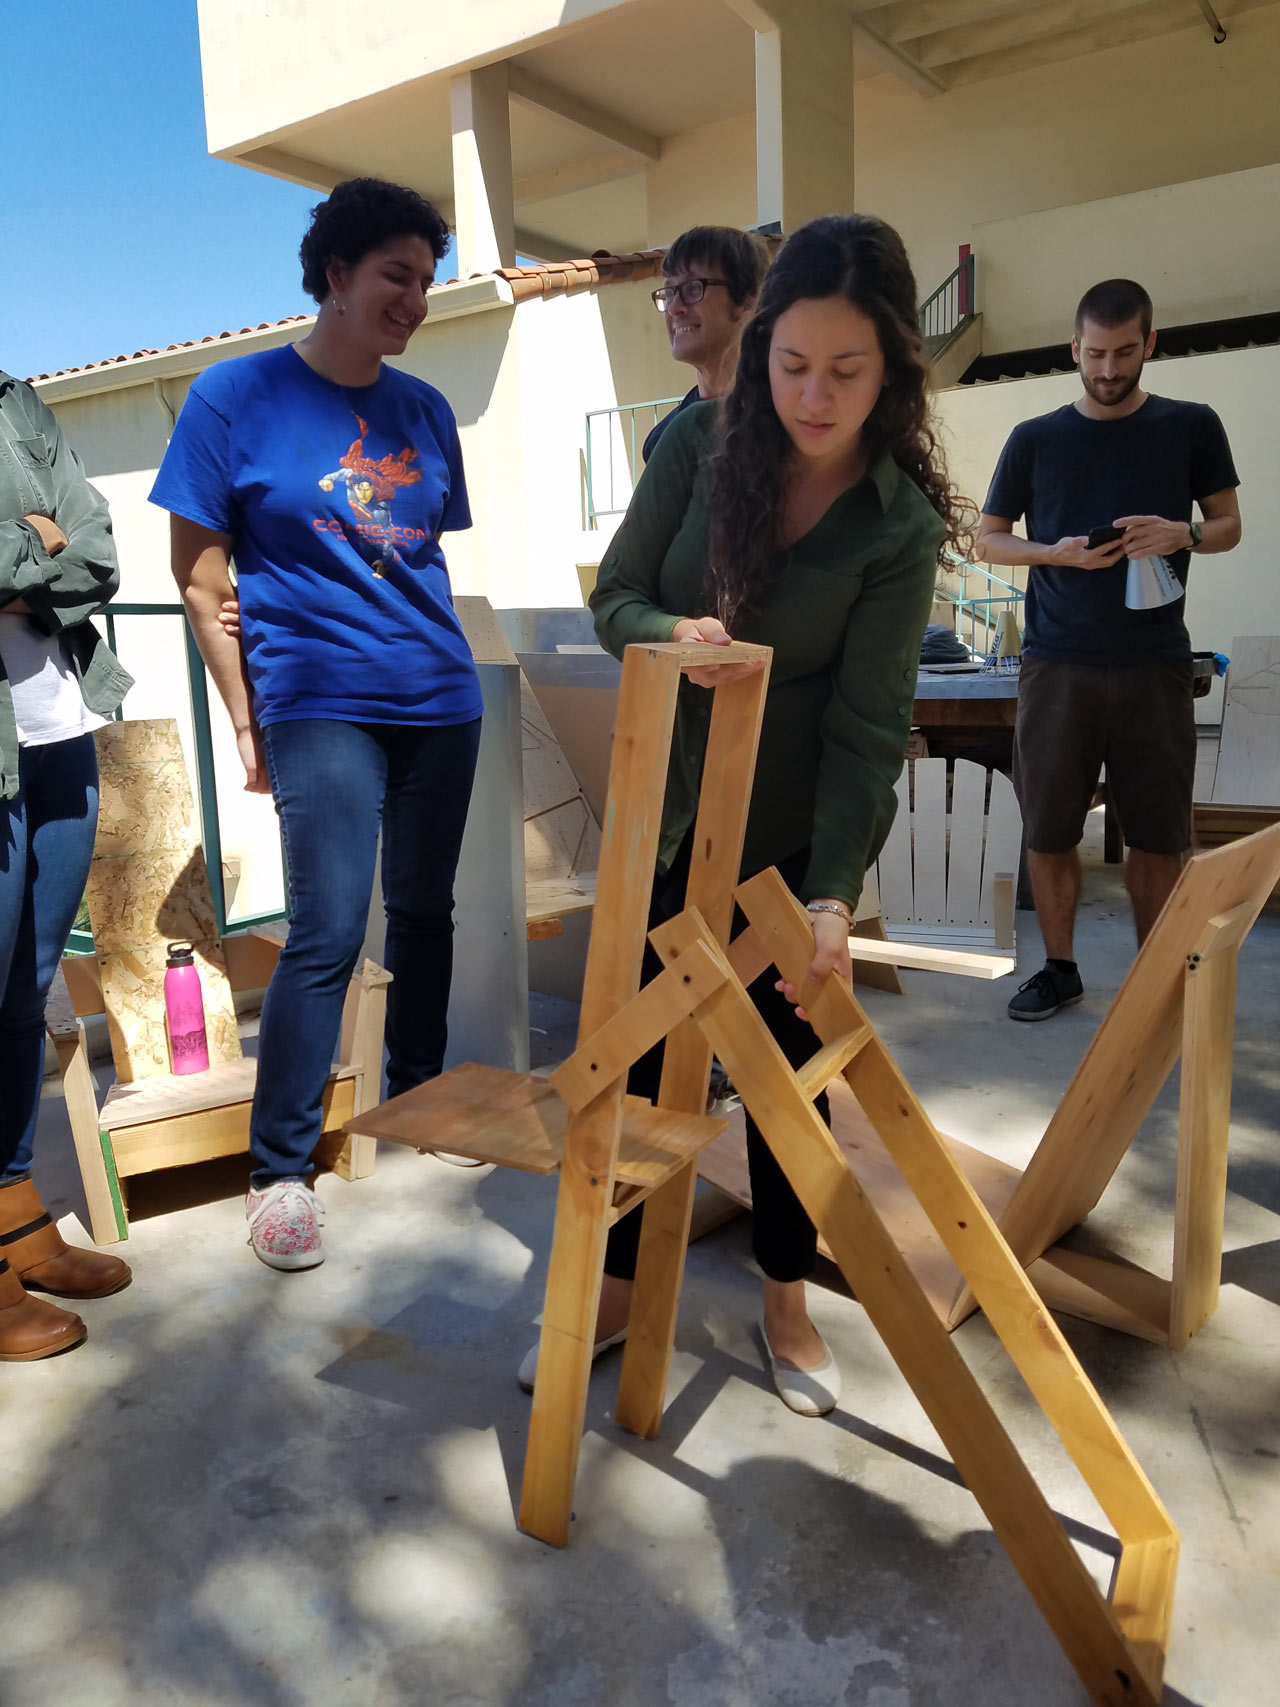 Caselle Reinke demonstrates her folding chair during the critique. Photo by Aleya Lanteigne